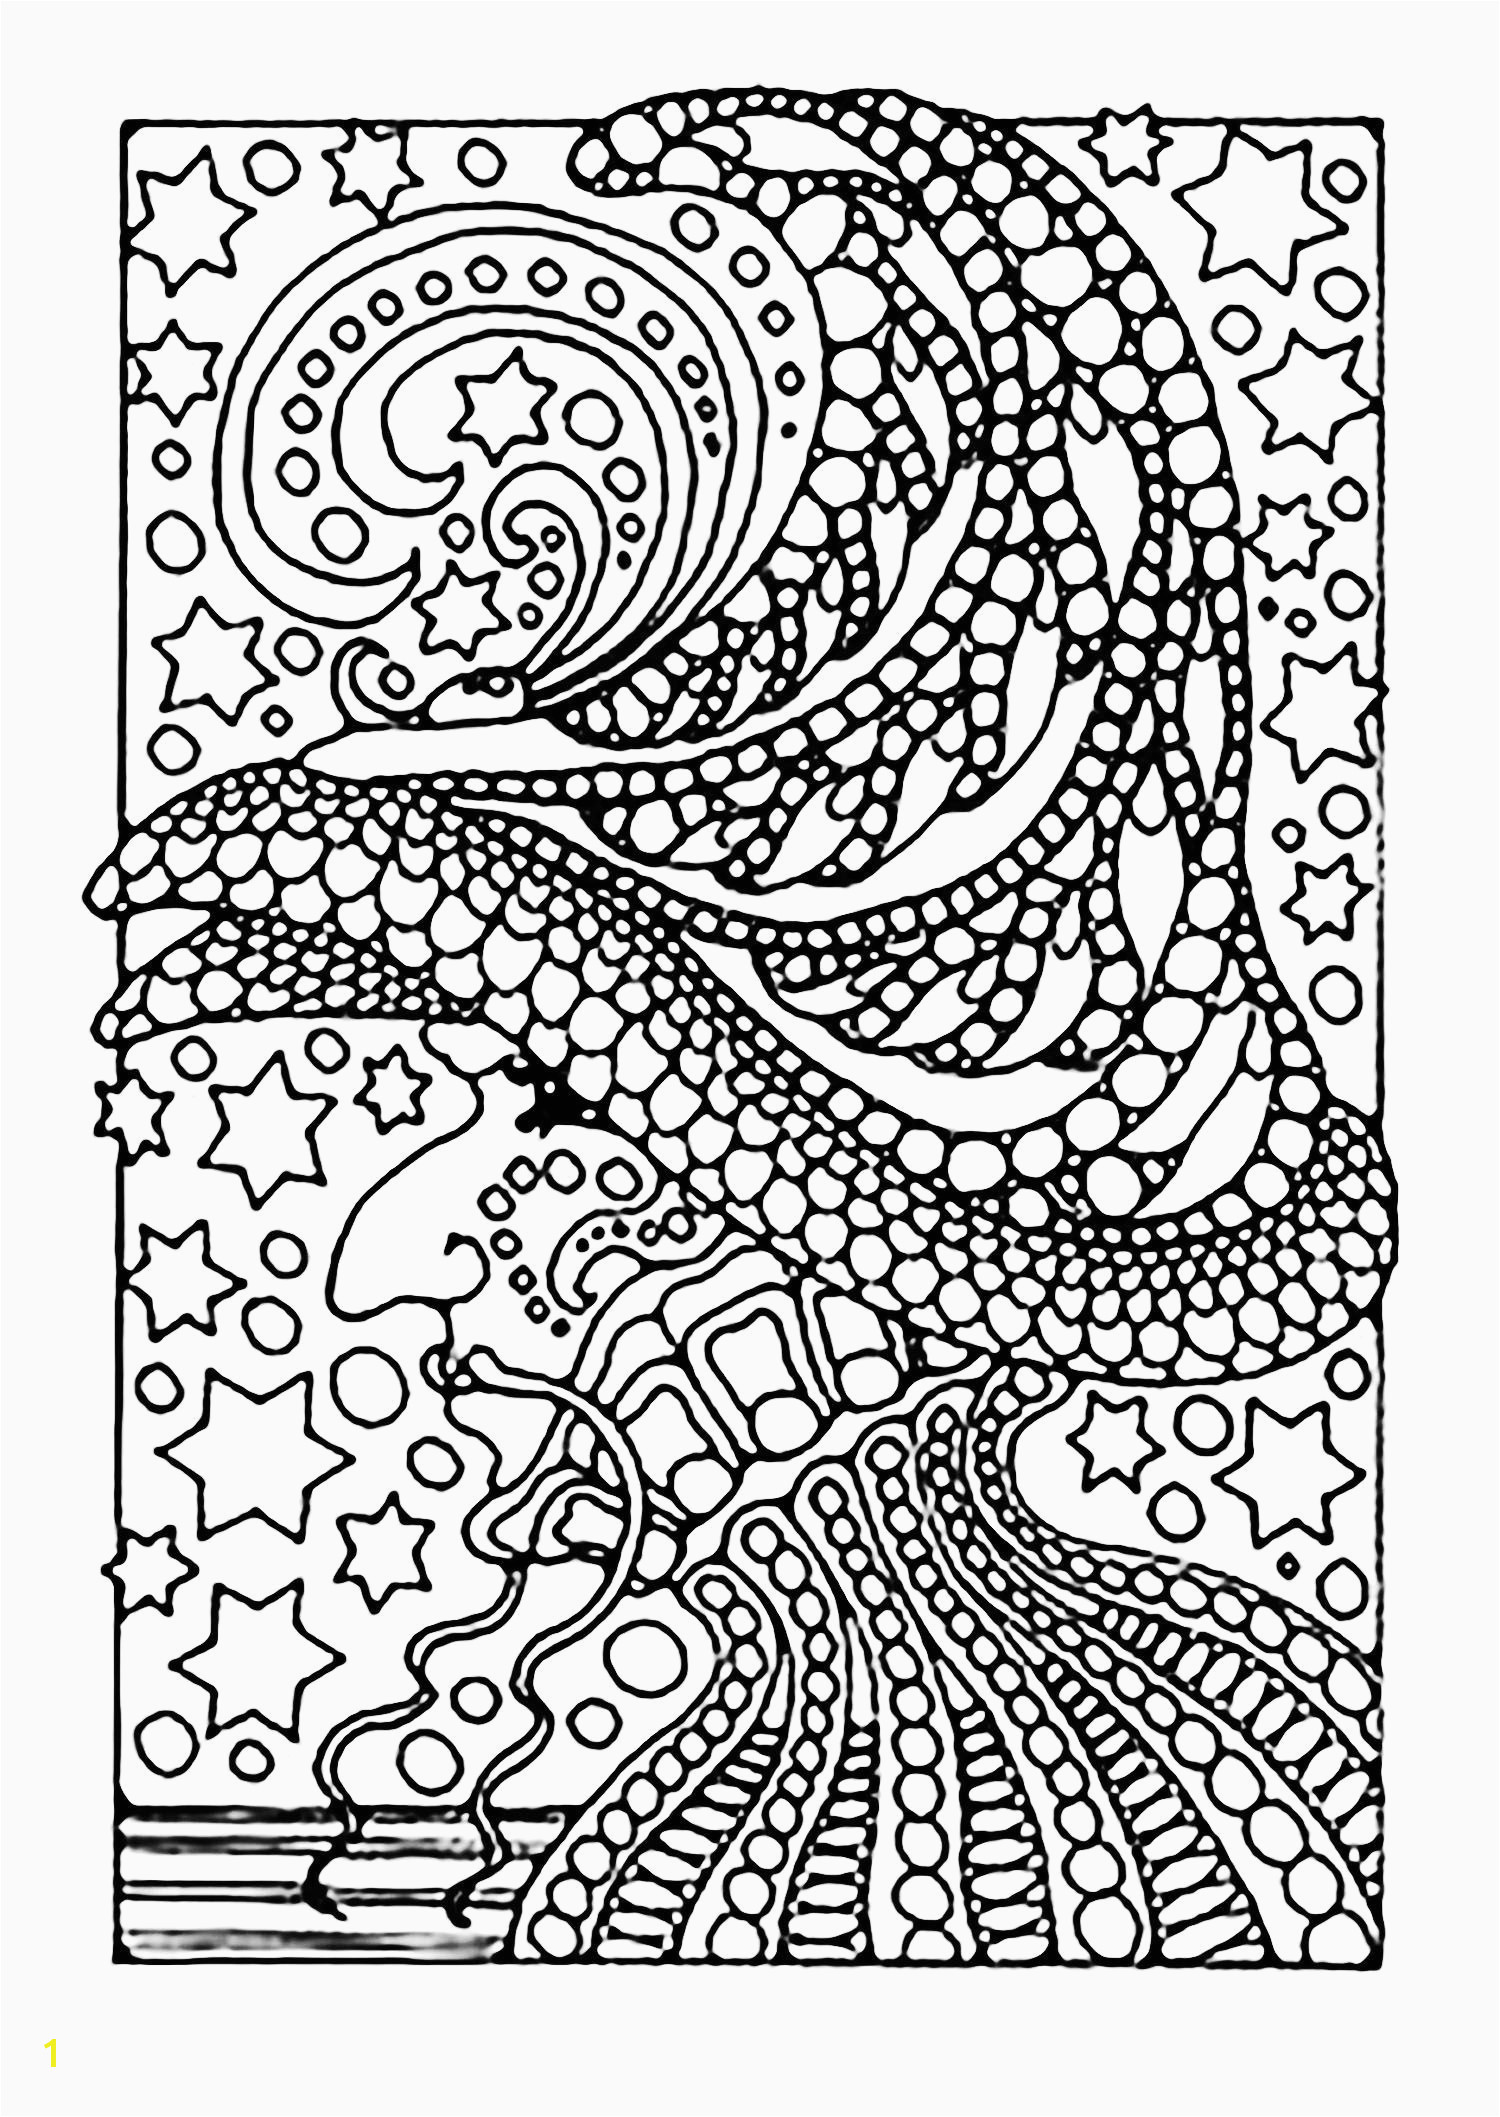 Sneaker Coloring Page New Drawing Coloring Pages Luxury Coloring Printables 0d – Fun Time 17